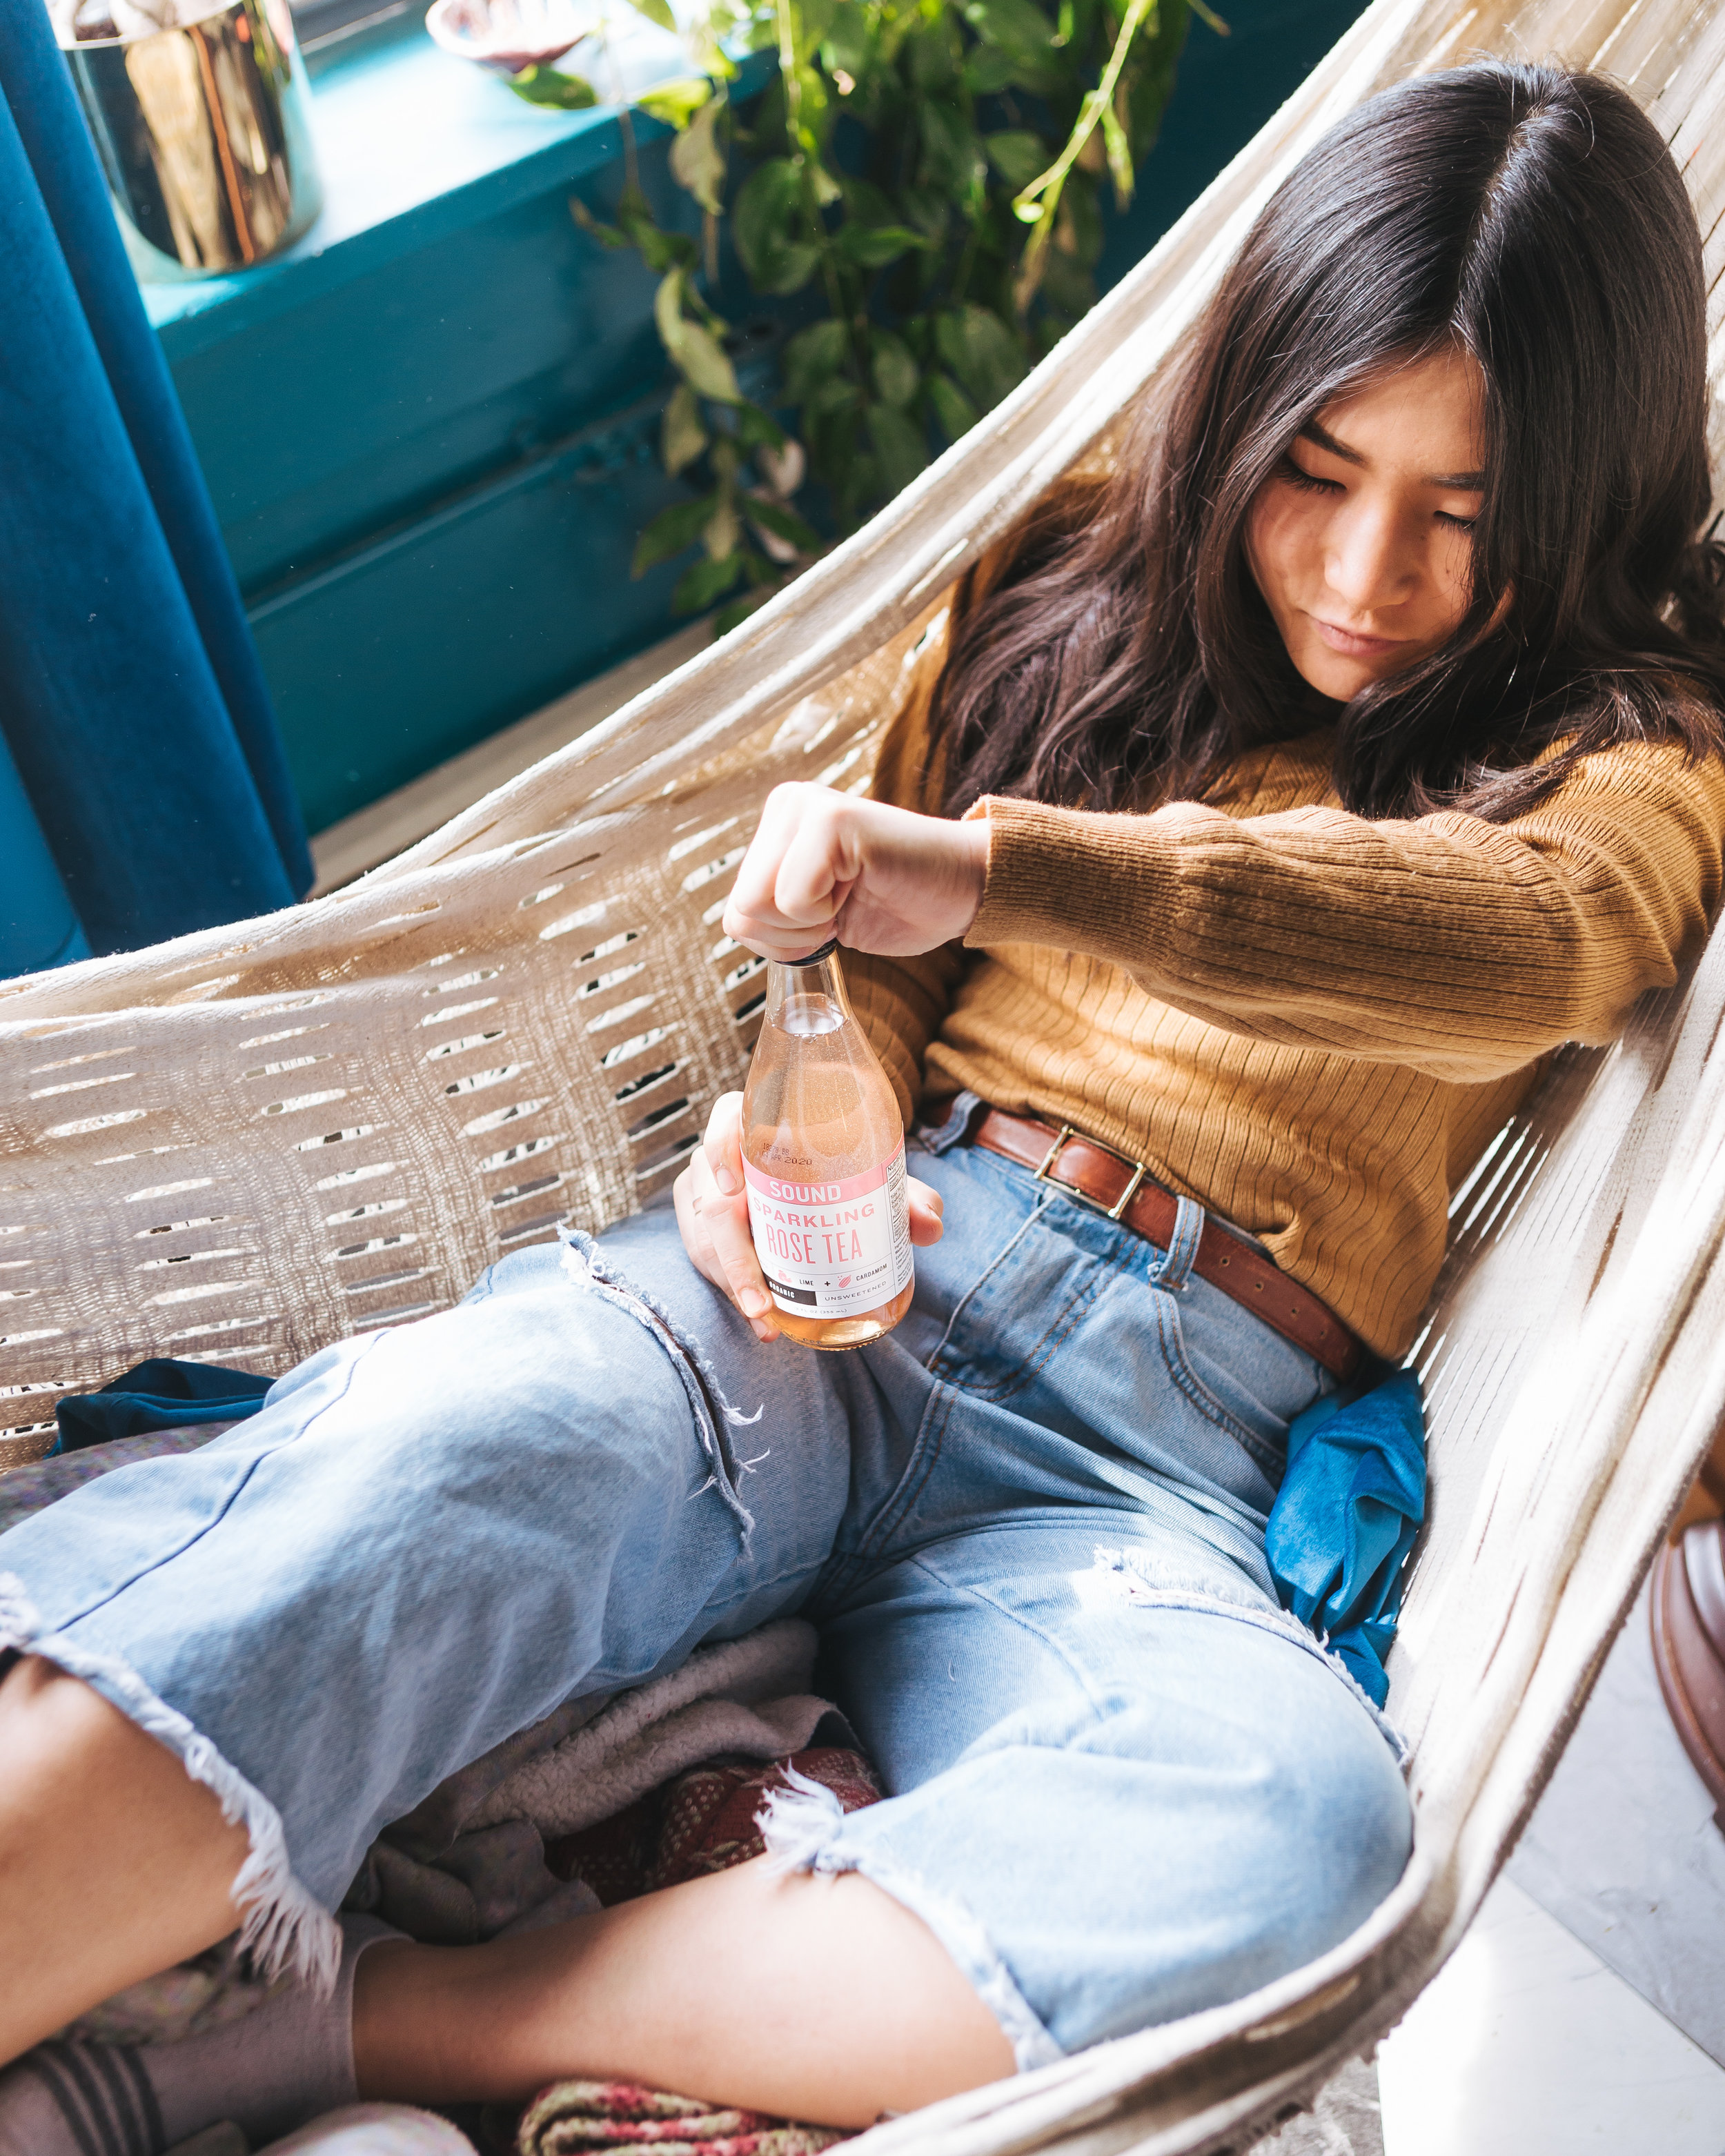 Hammock… chilling… how most of us felt today, I am sure!